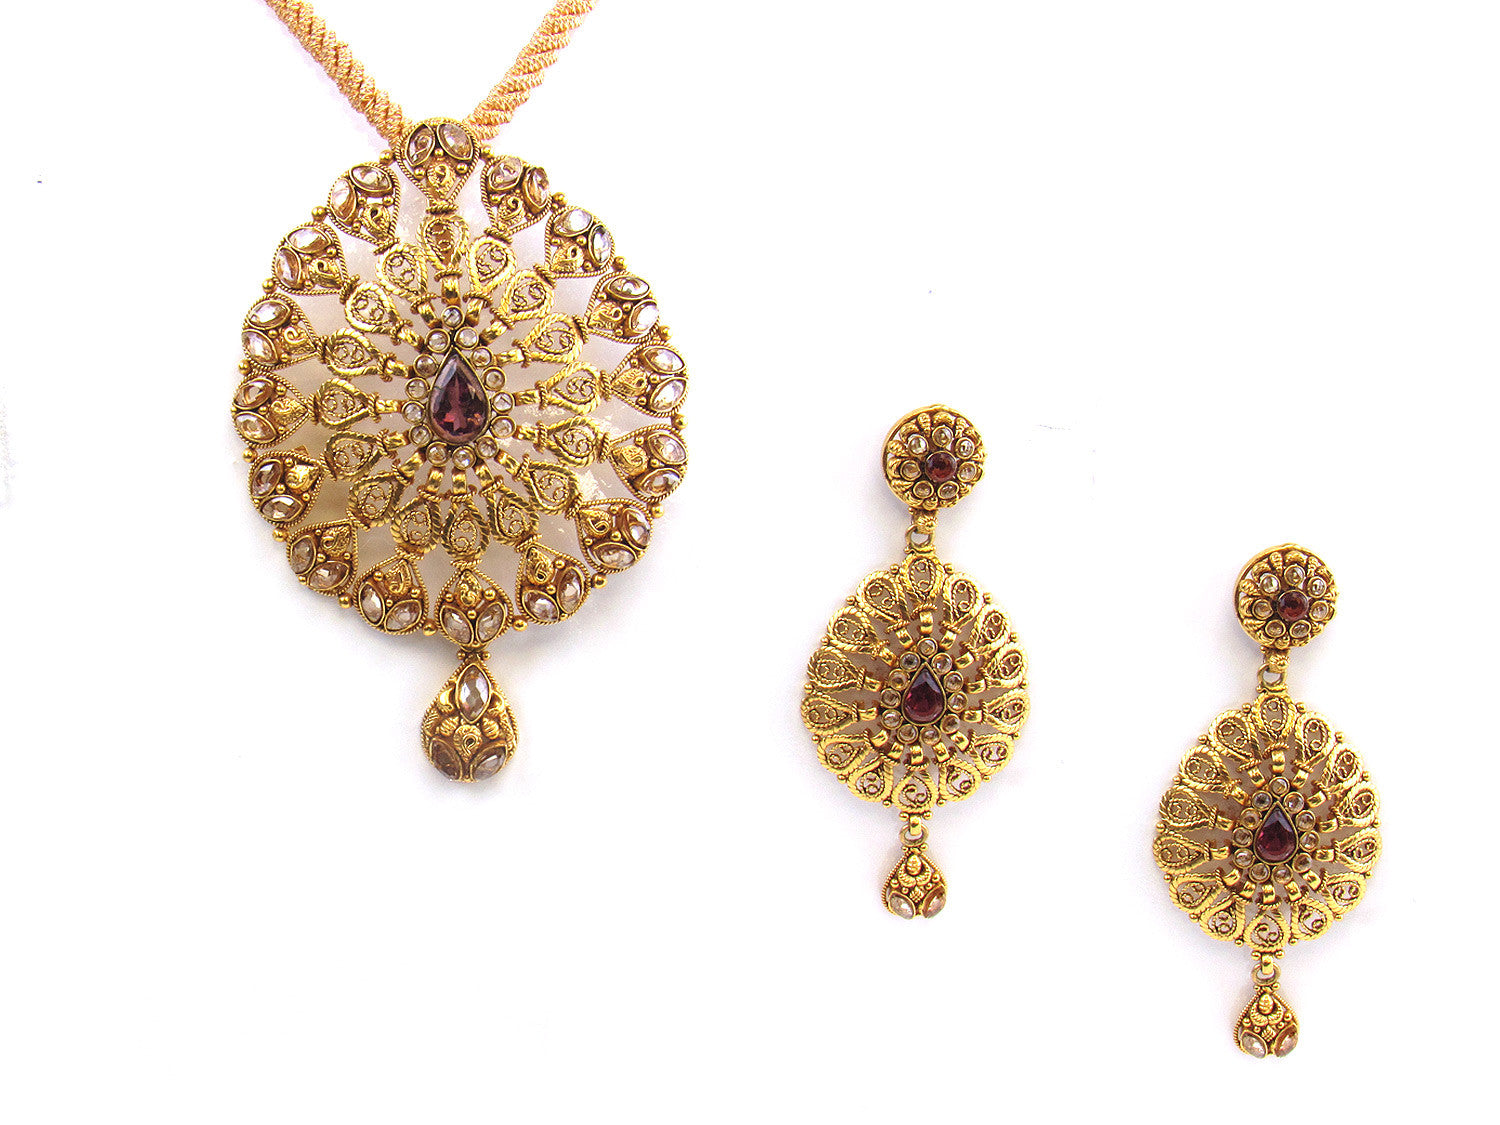 3064g 22kt gold antique pendant set houston texas usa 3064g 22kt gold antique pendant set mozeypictures Gallery